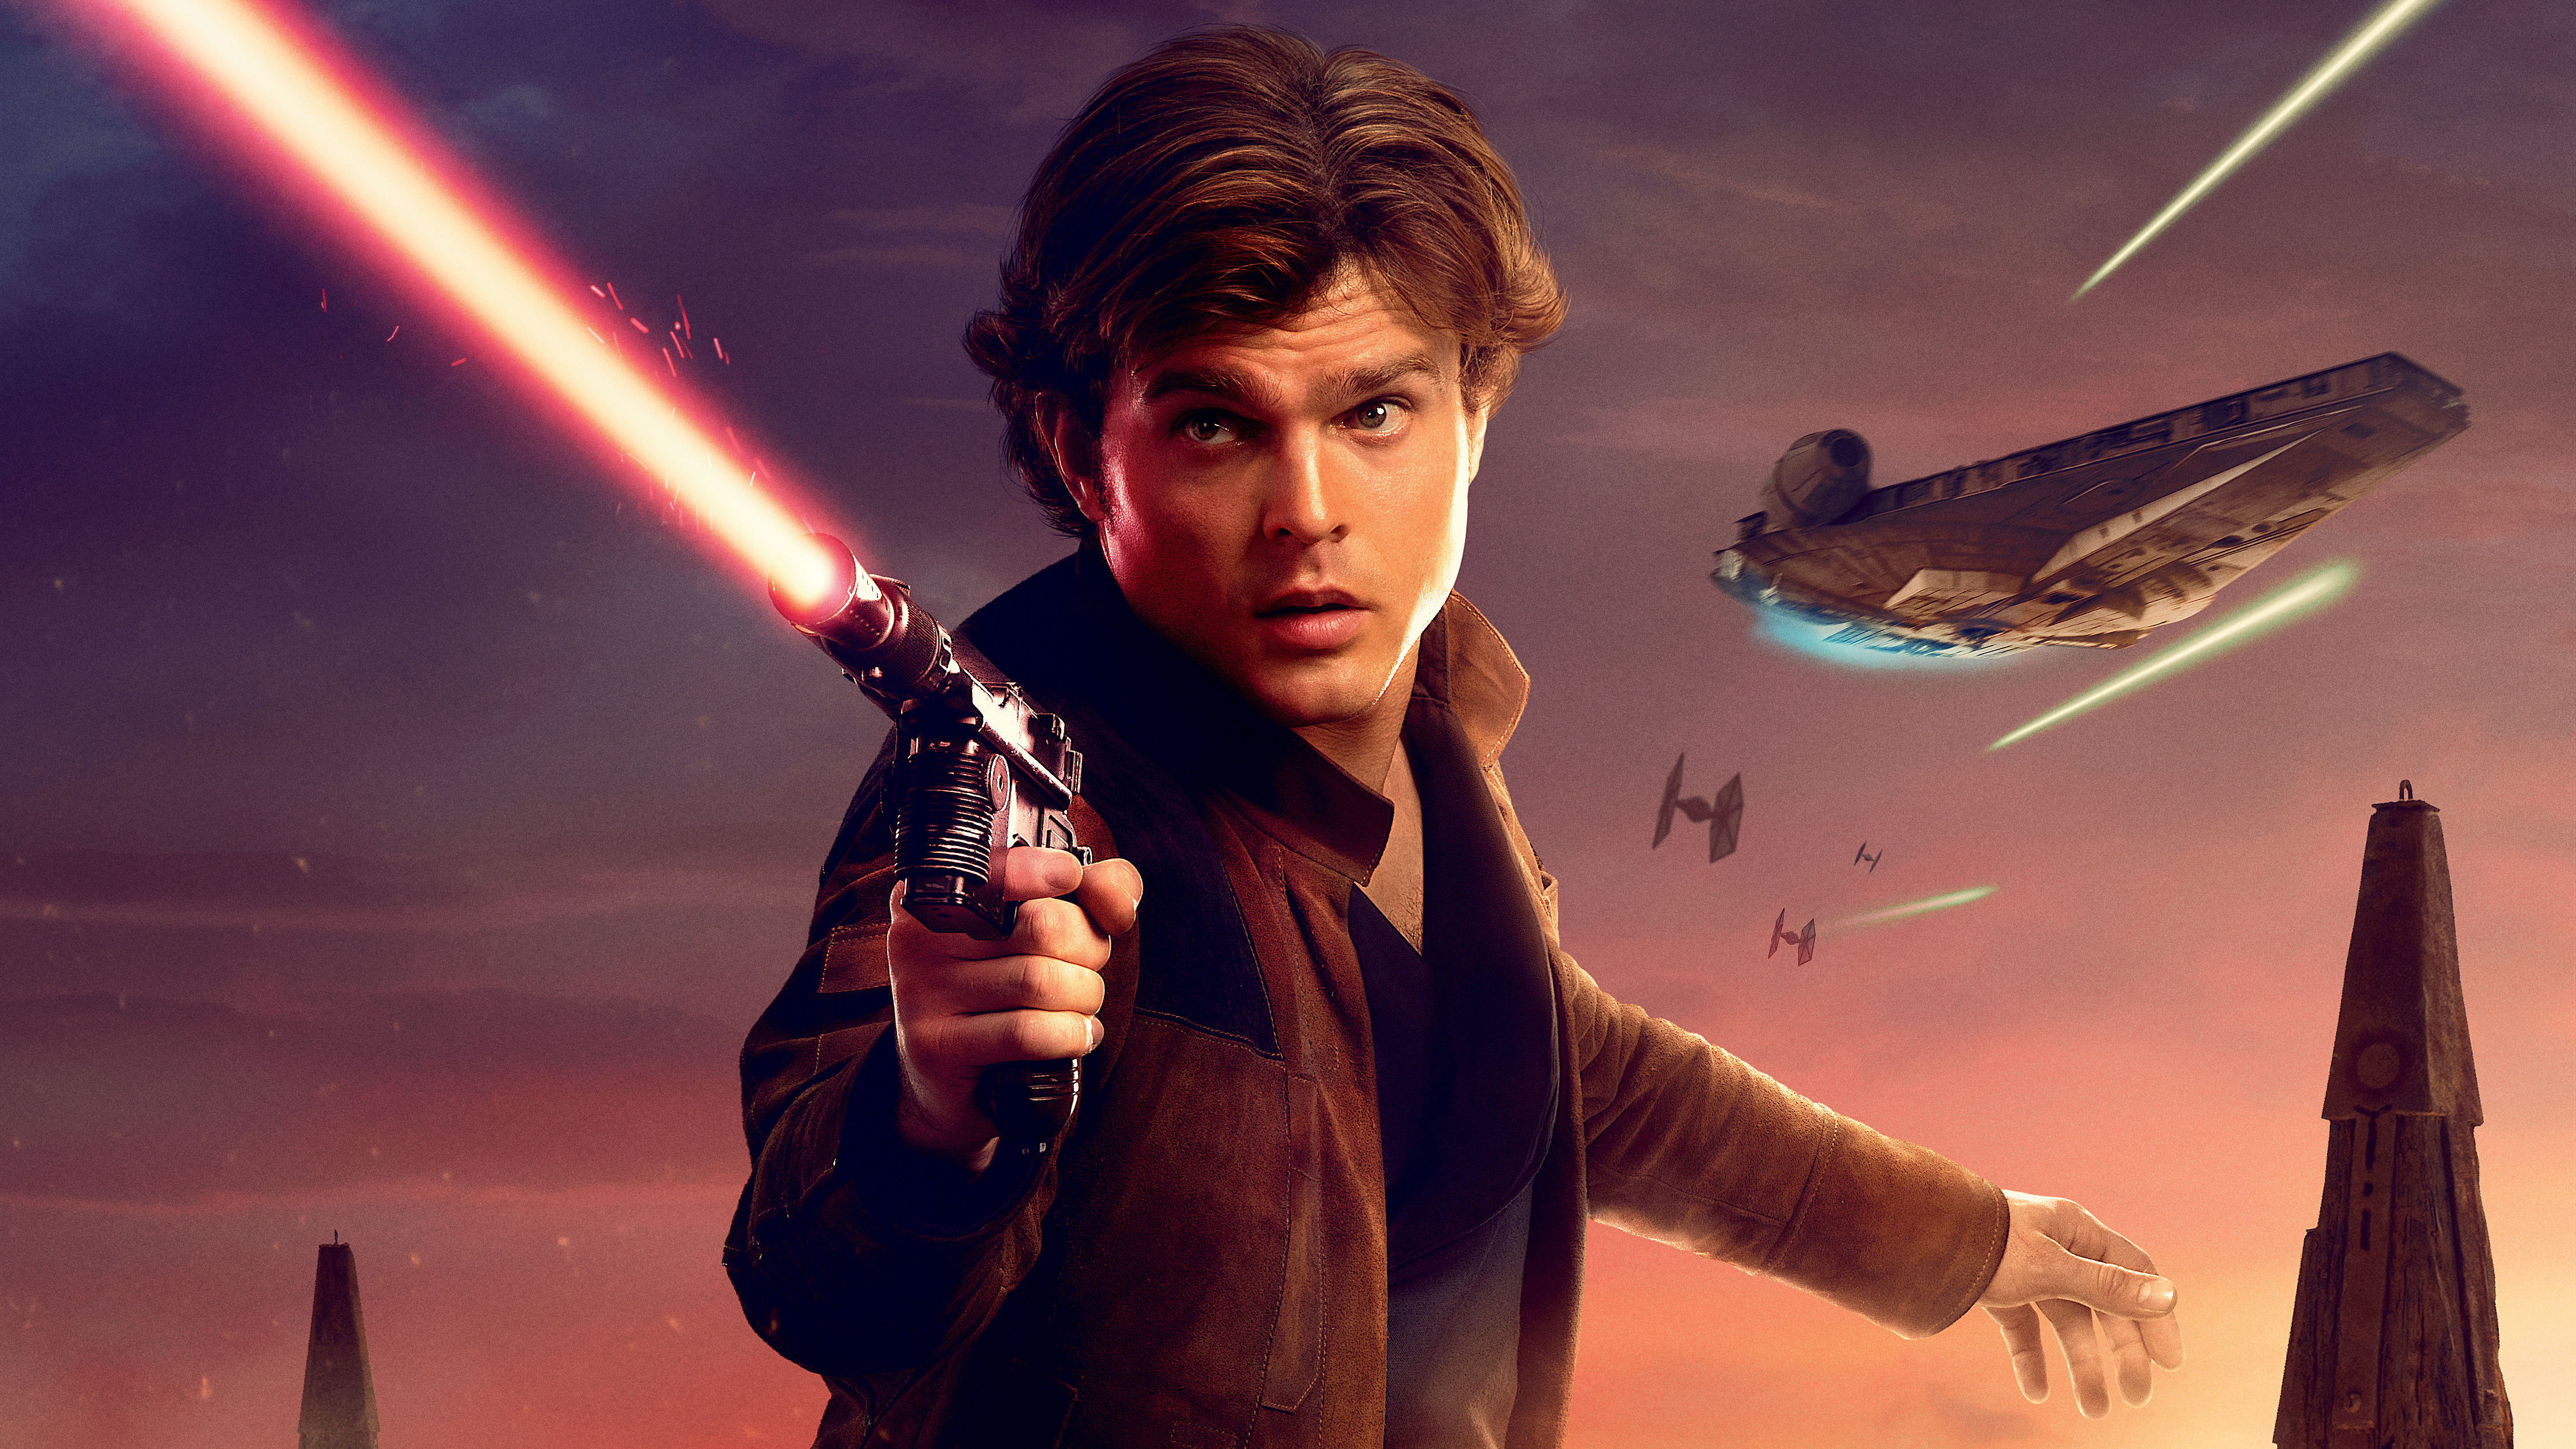 Han Solo In Solo A Star Wars Story Movie 5K, Hd Movies, 4K -2371